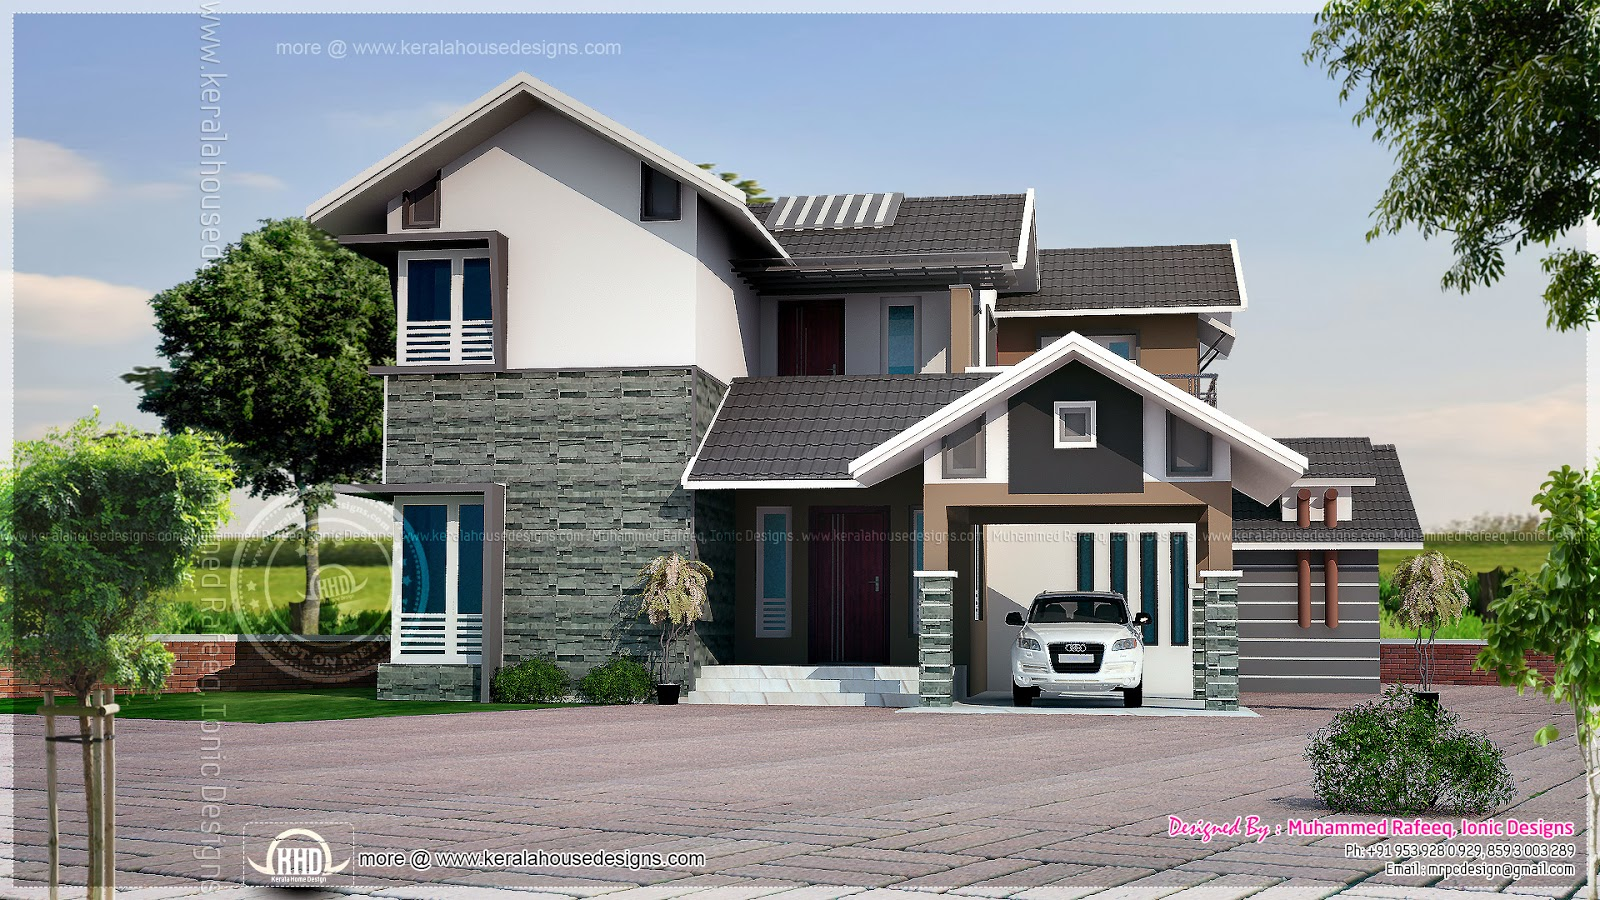 28 Spectacular Sloped Roof Houses - House Plans